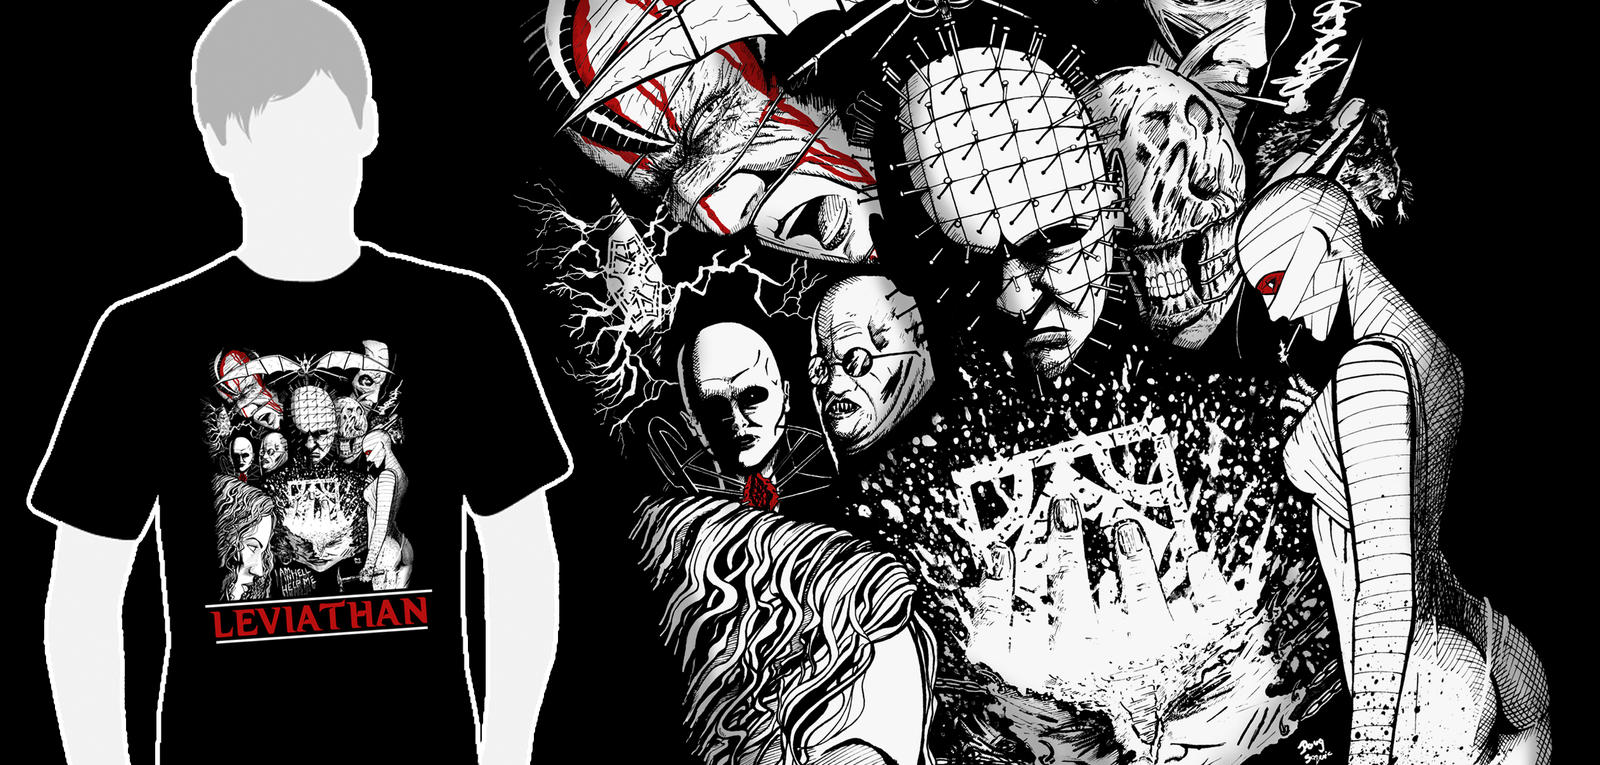 Limited Edition Hellraiser Leviathan t-shirt by DougSQ